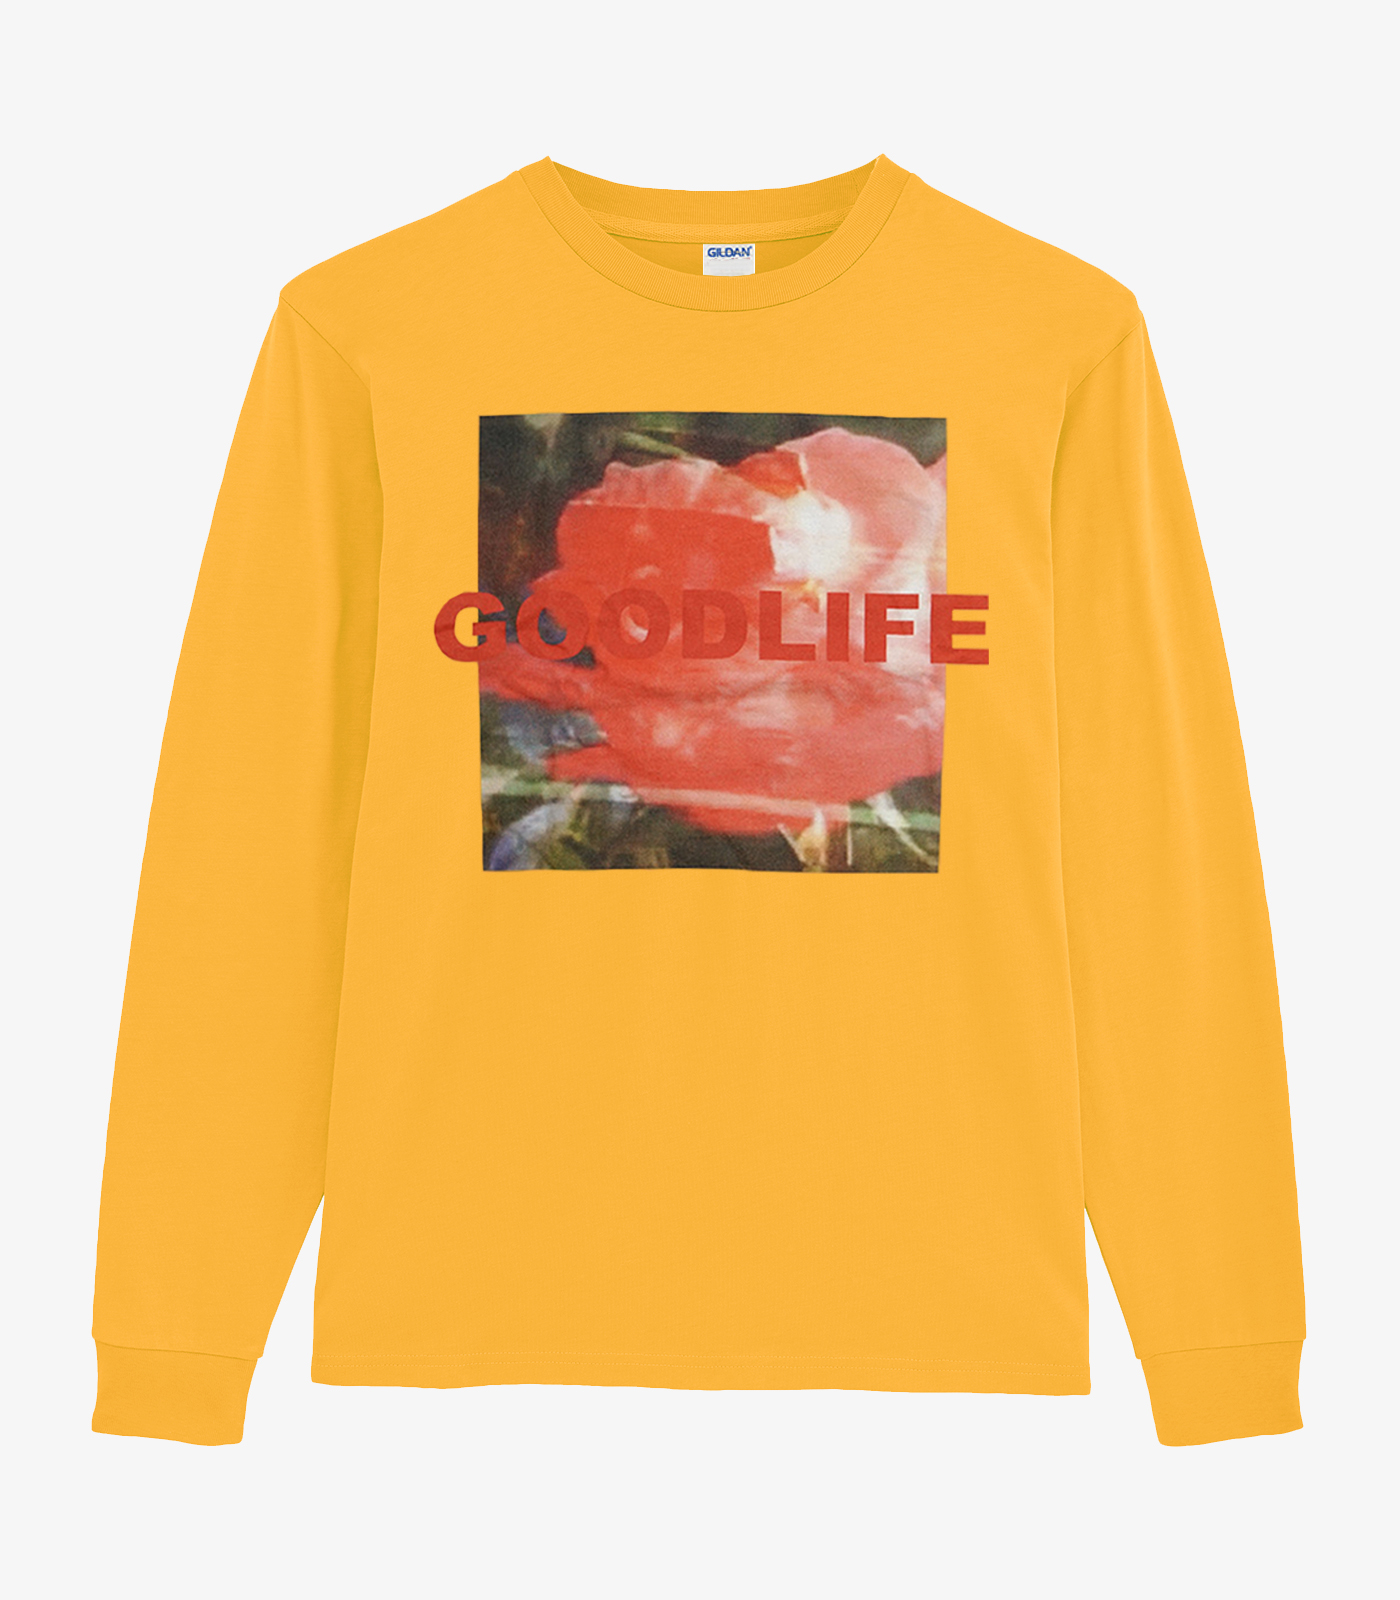 Goodlife Long-sleeve